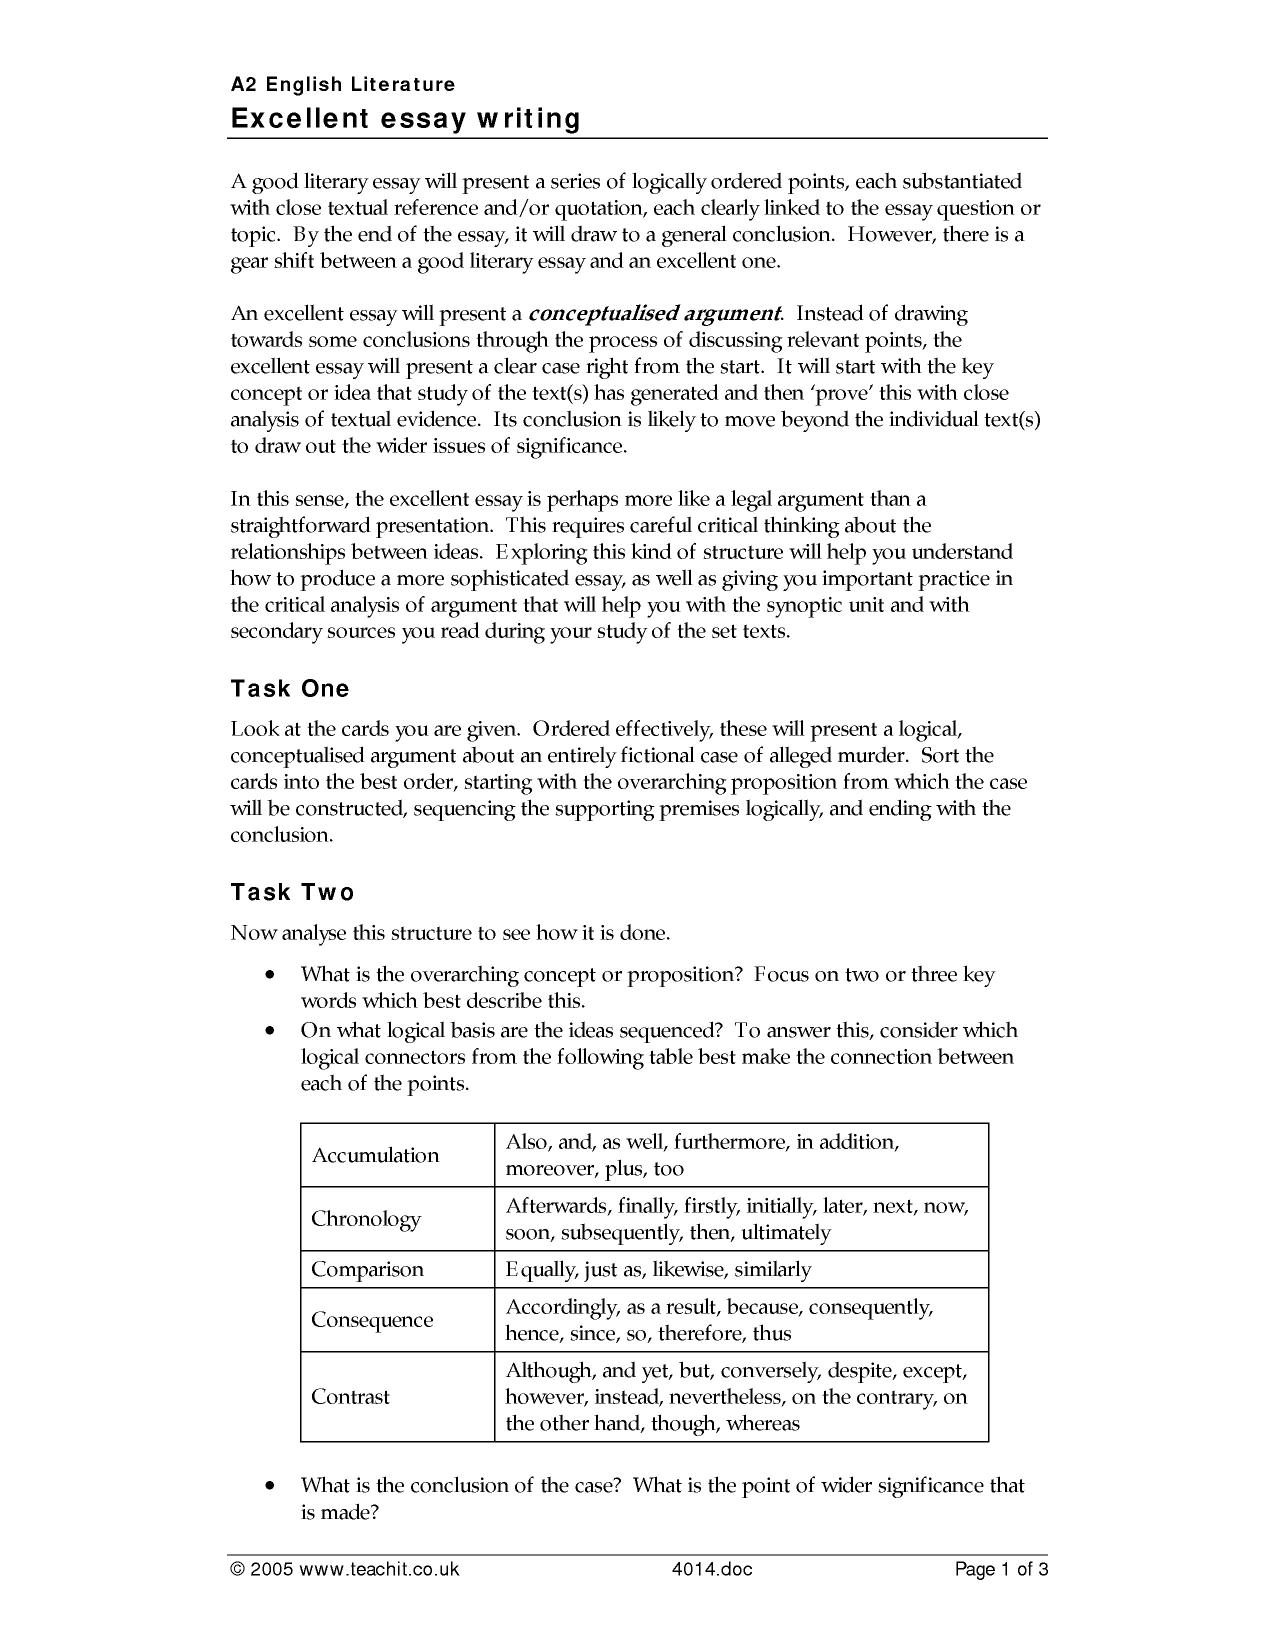 ks skills  essay writing  teachit english  preview